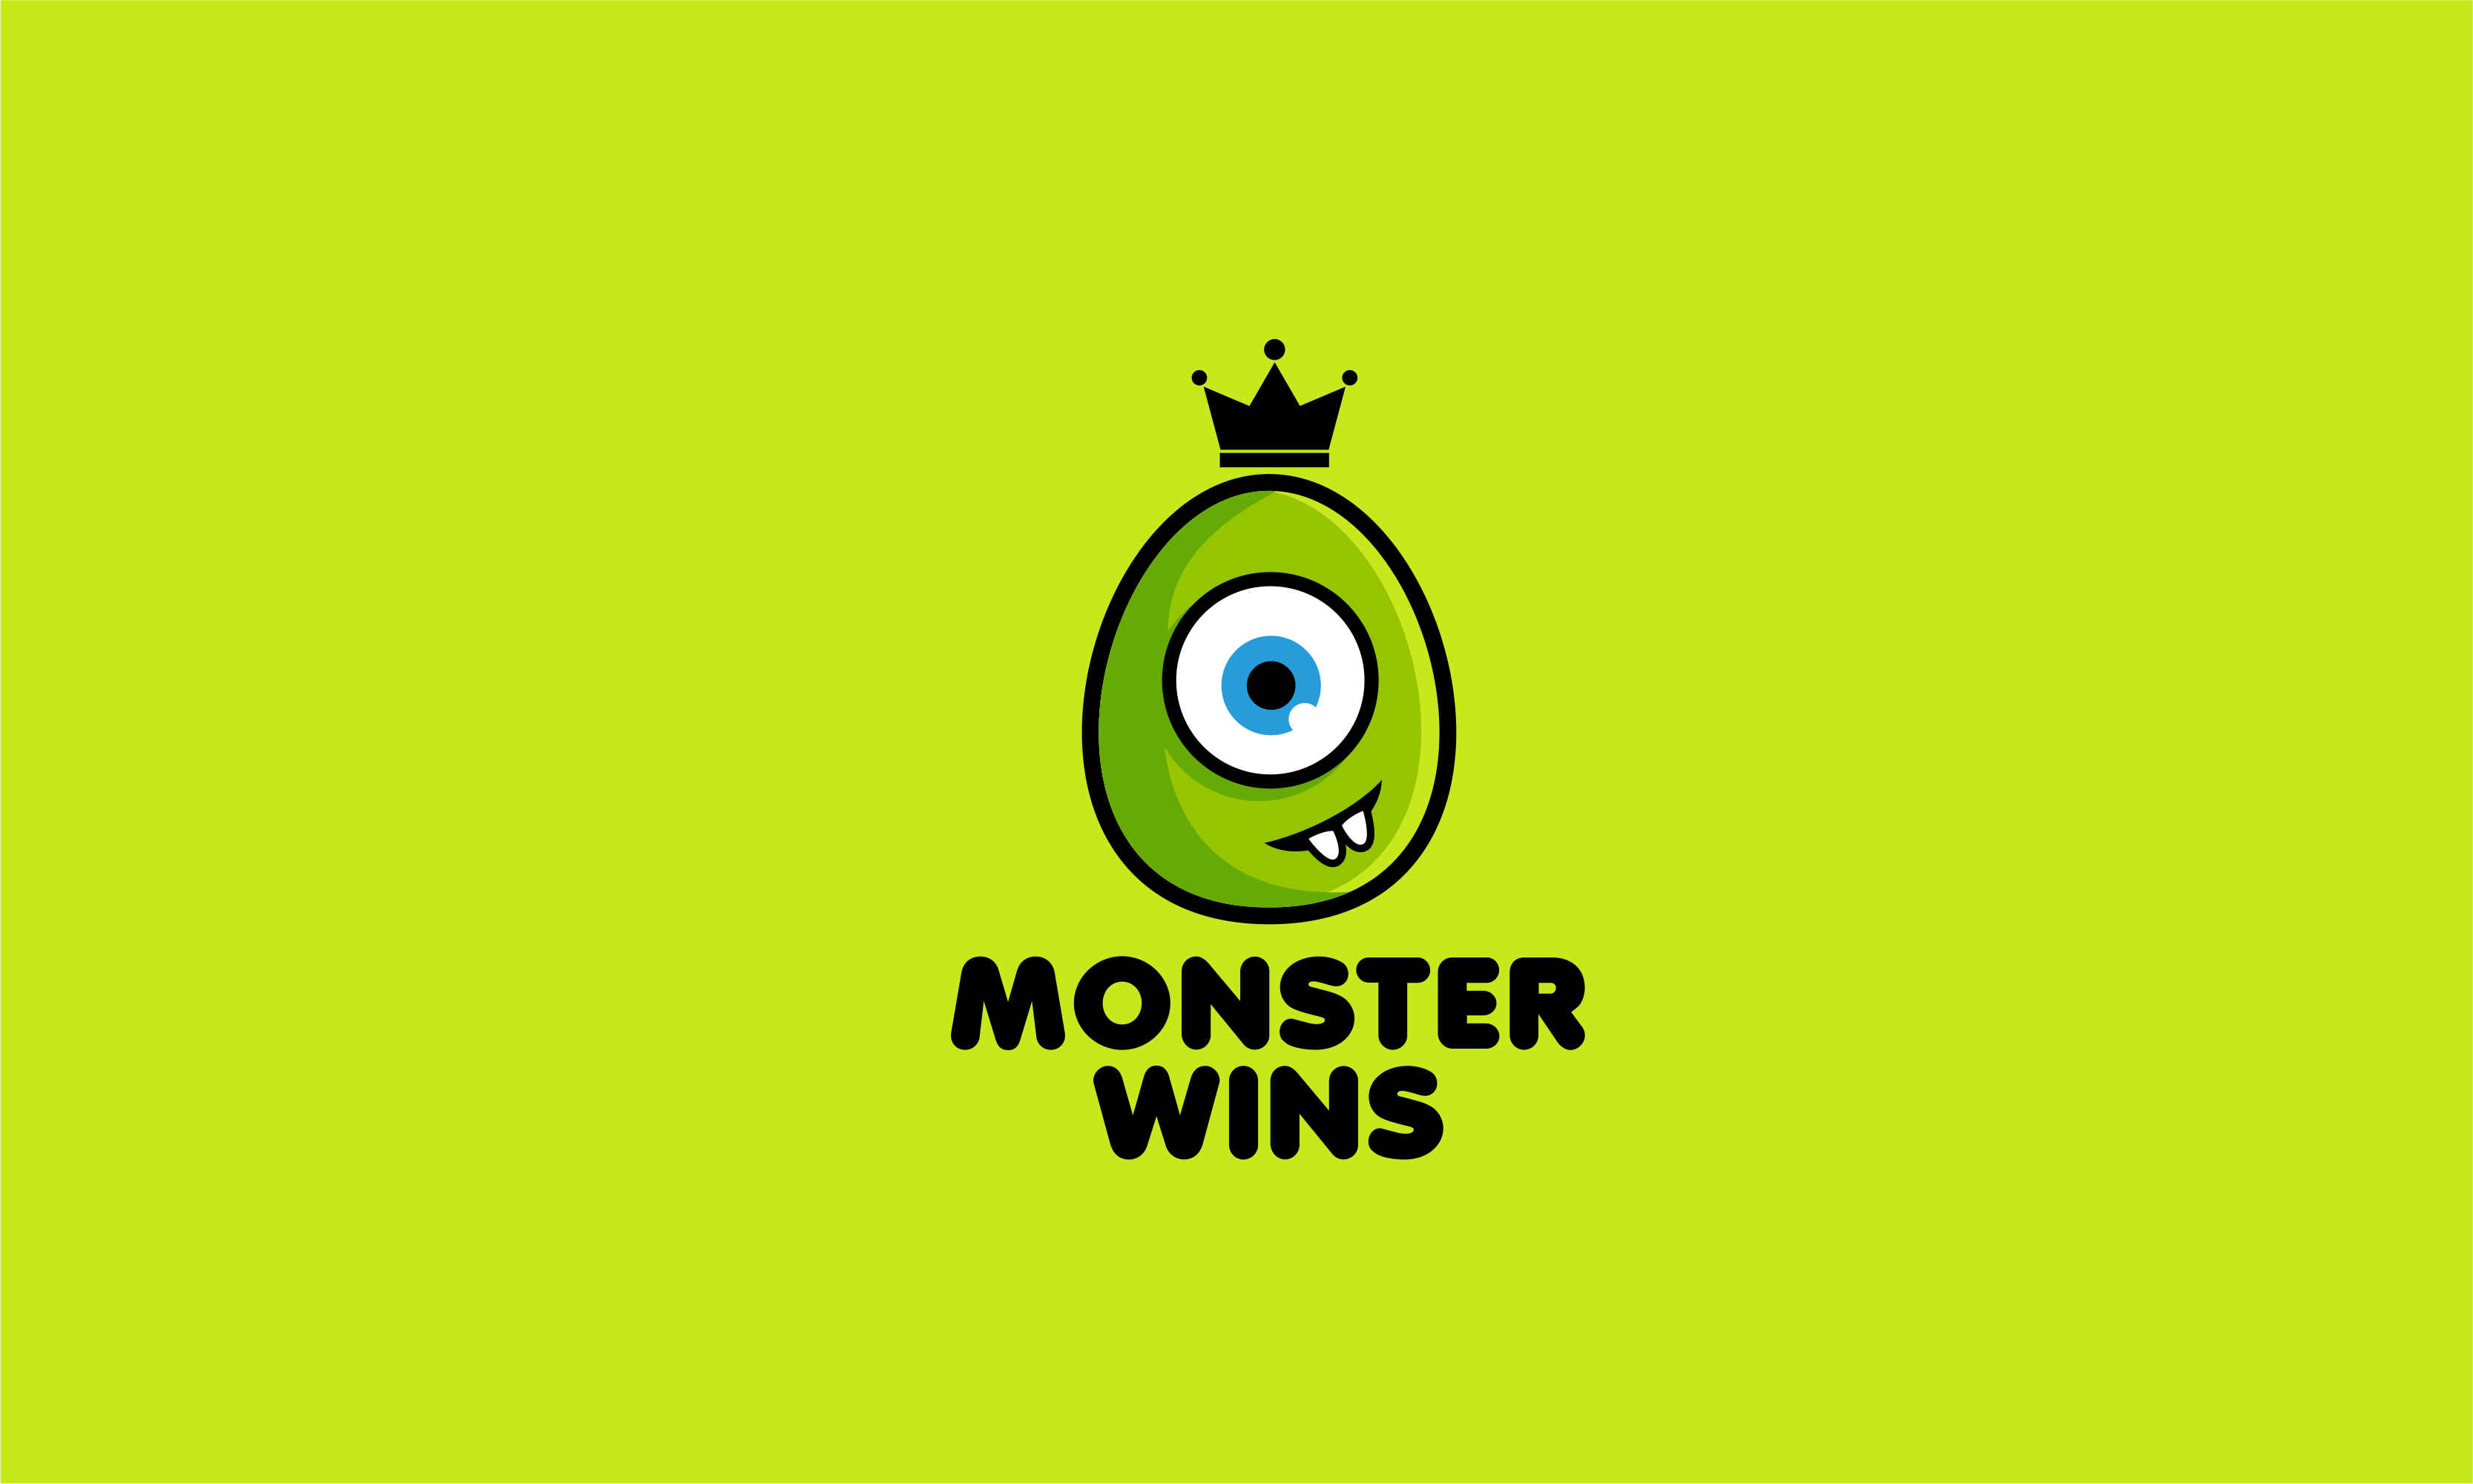 Monsterwins